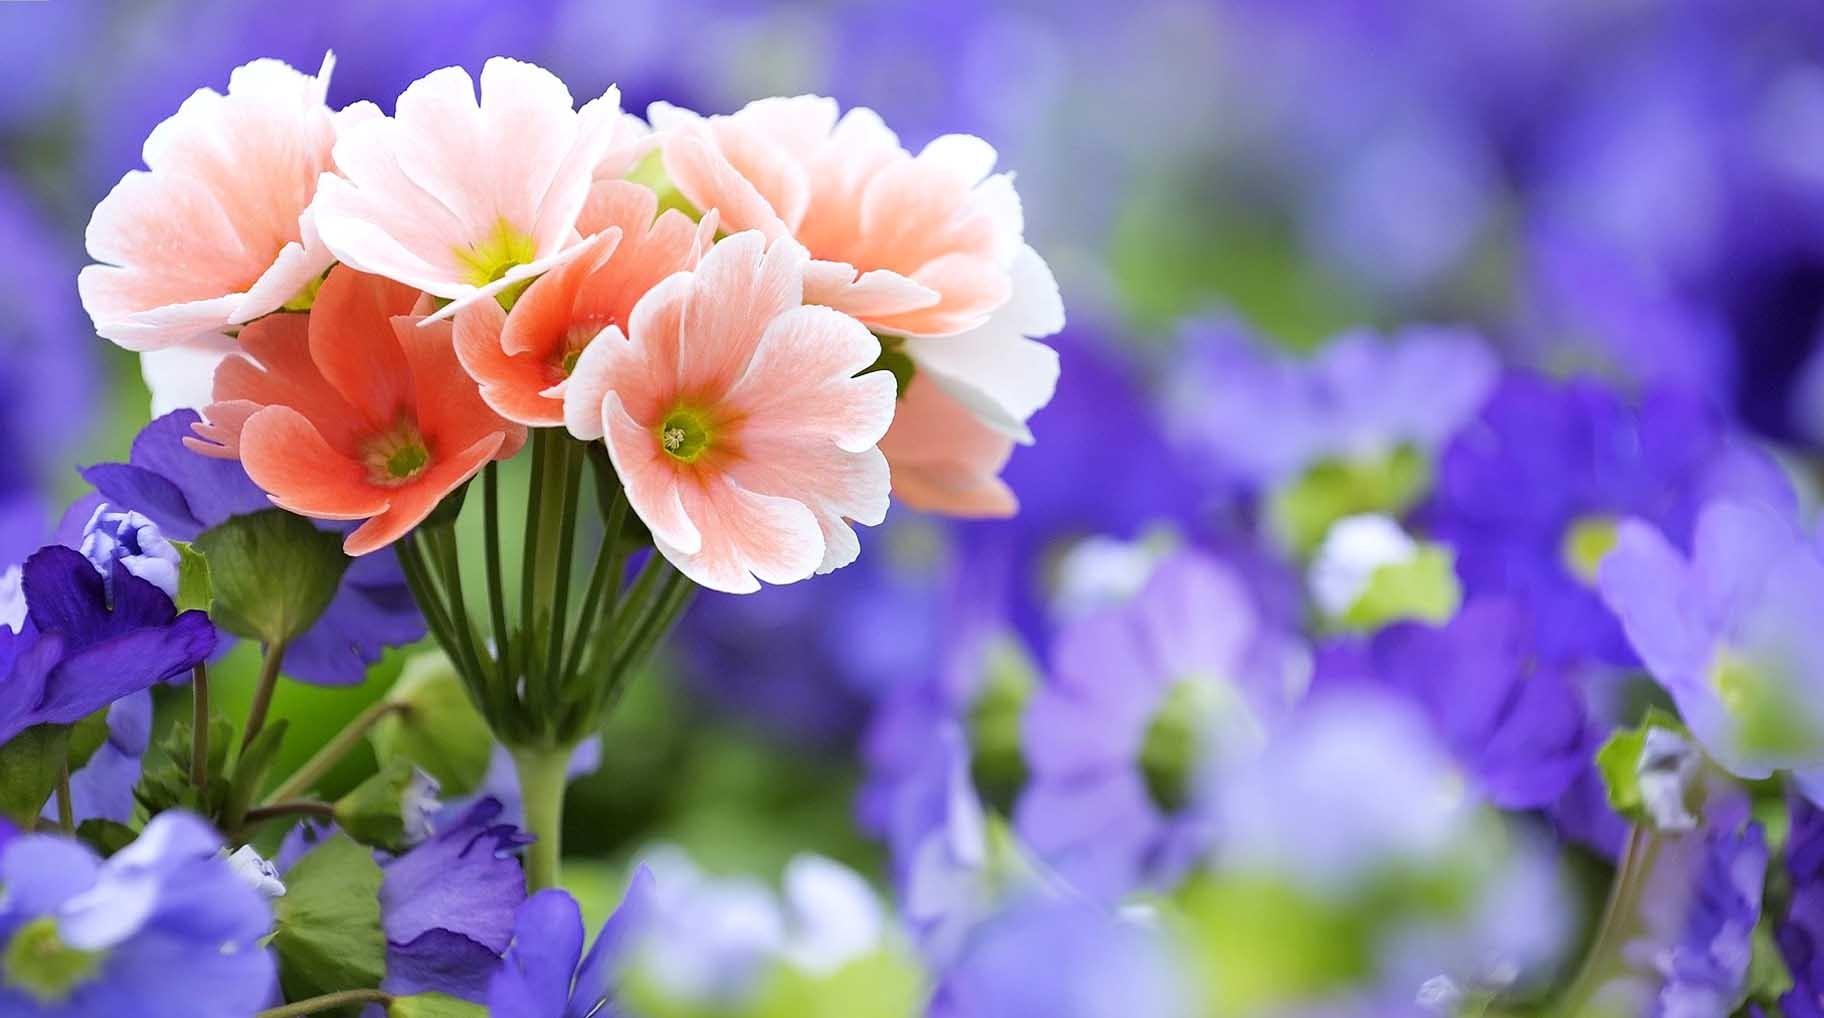 Collection of Beautiful Flowers Wallpaper Free Download on